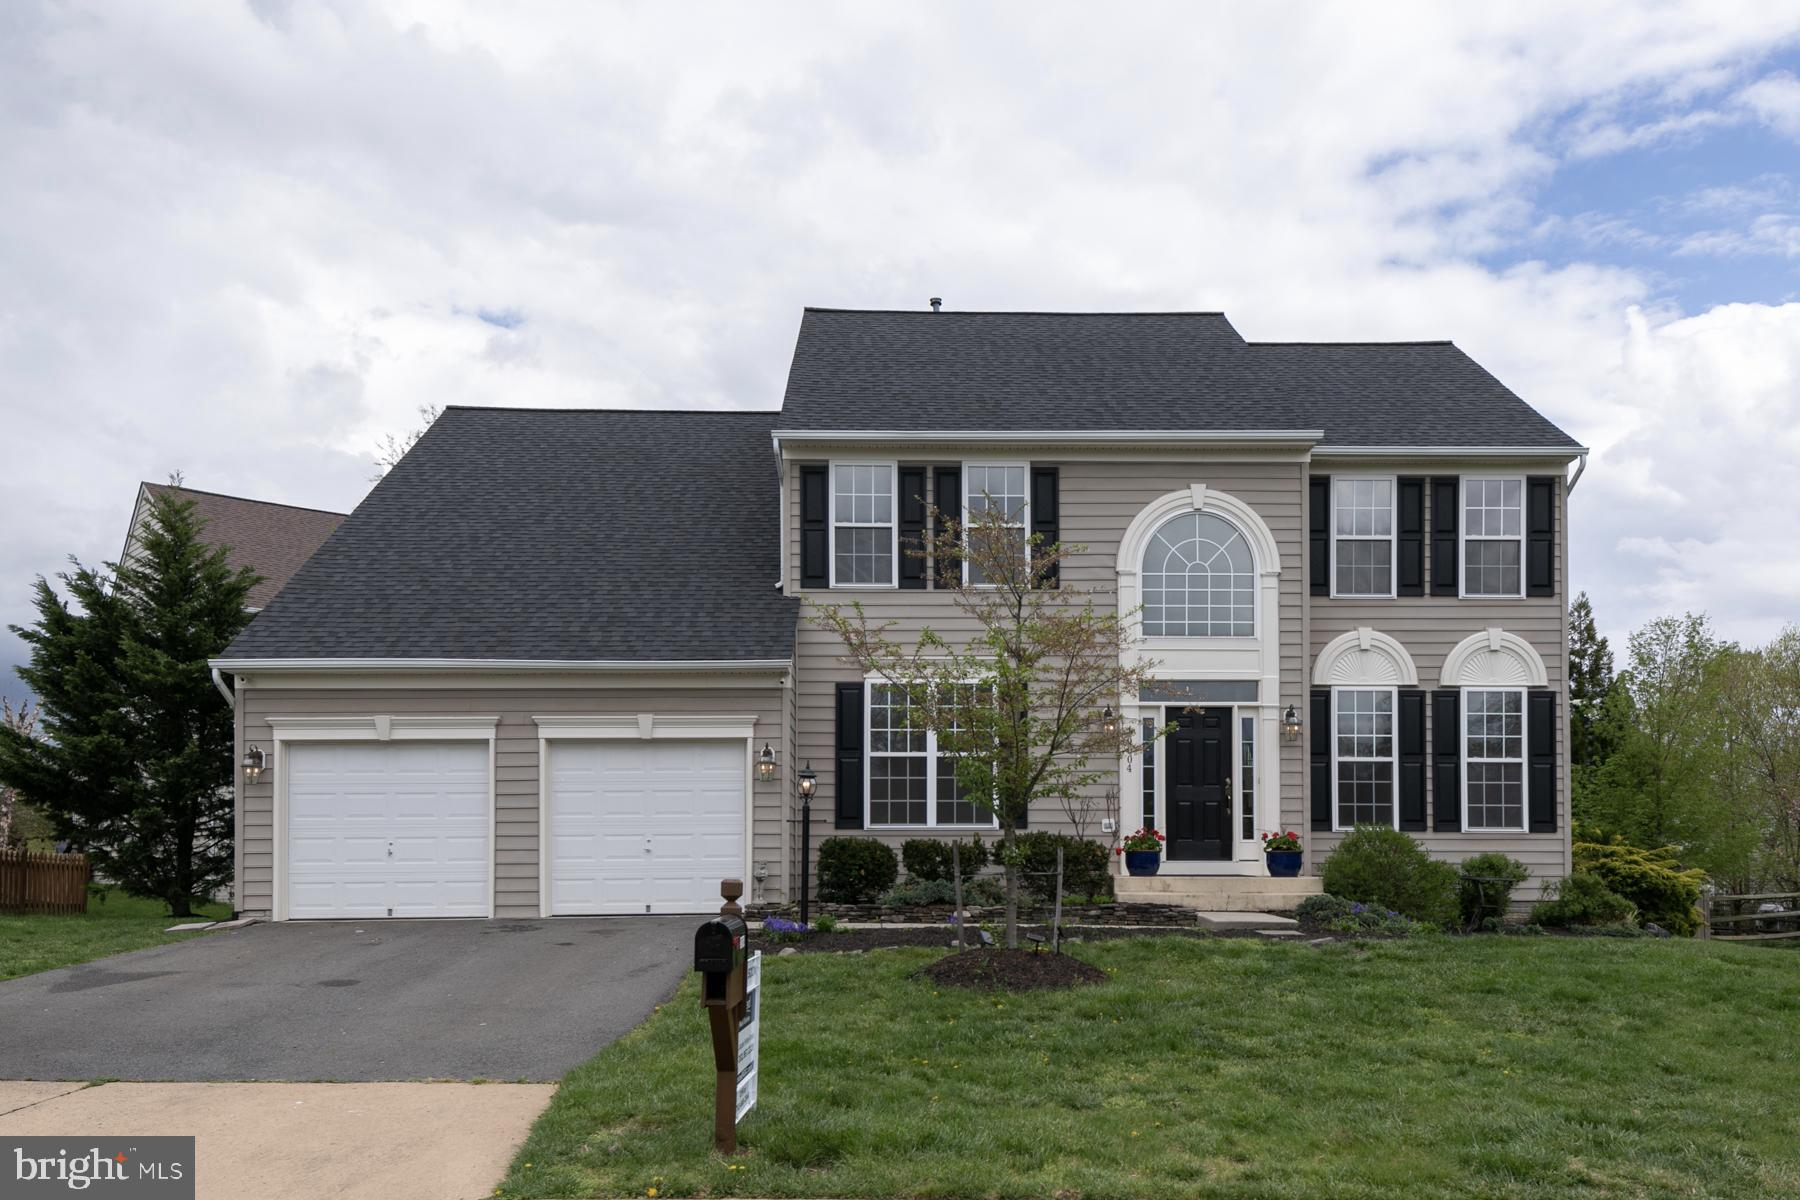 Welcome home to this Gorgeous 4 BR 3 BA house on a cul-de-sac in sought-afterPotomac Station neighb